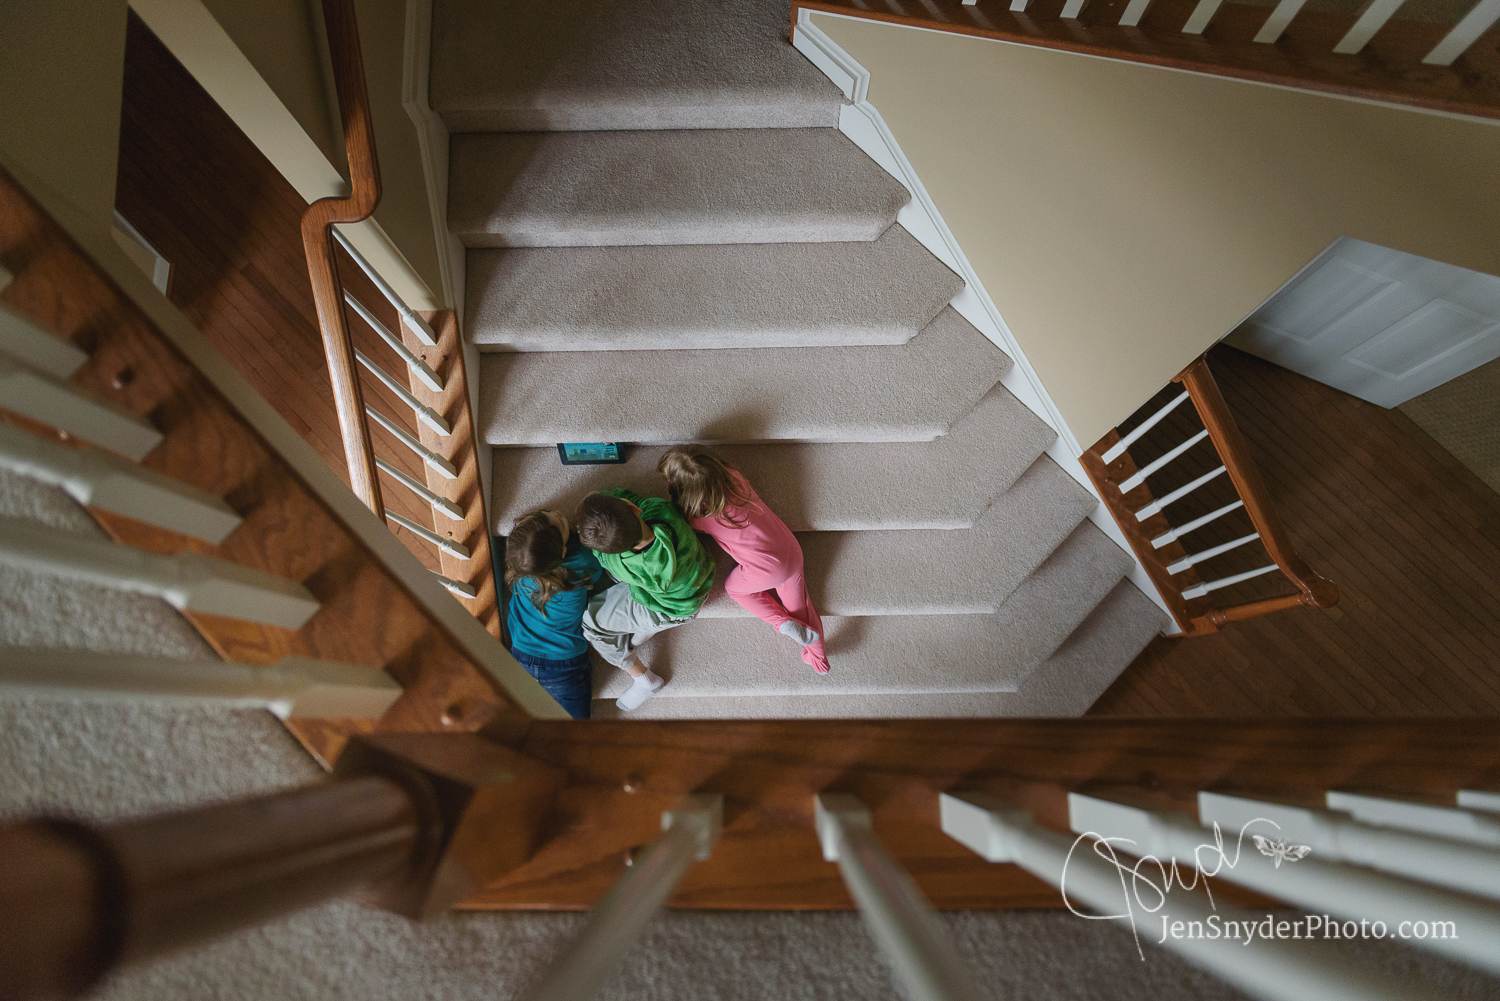 lifestyle and documentary photography in Bel Air, Maryland by Jen Snyder http://www.jensnyderphoto.com